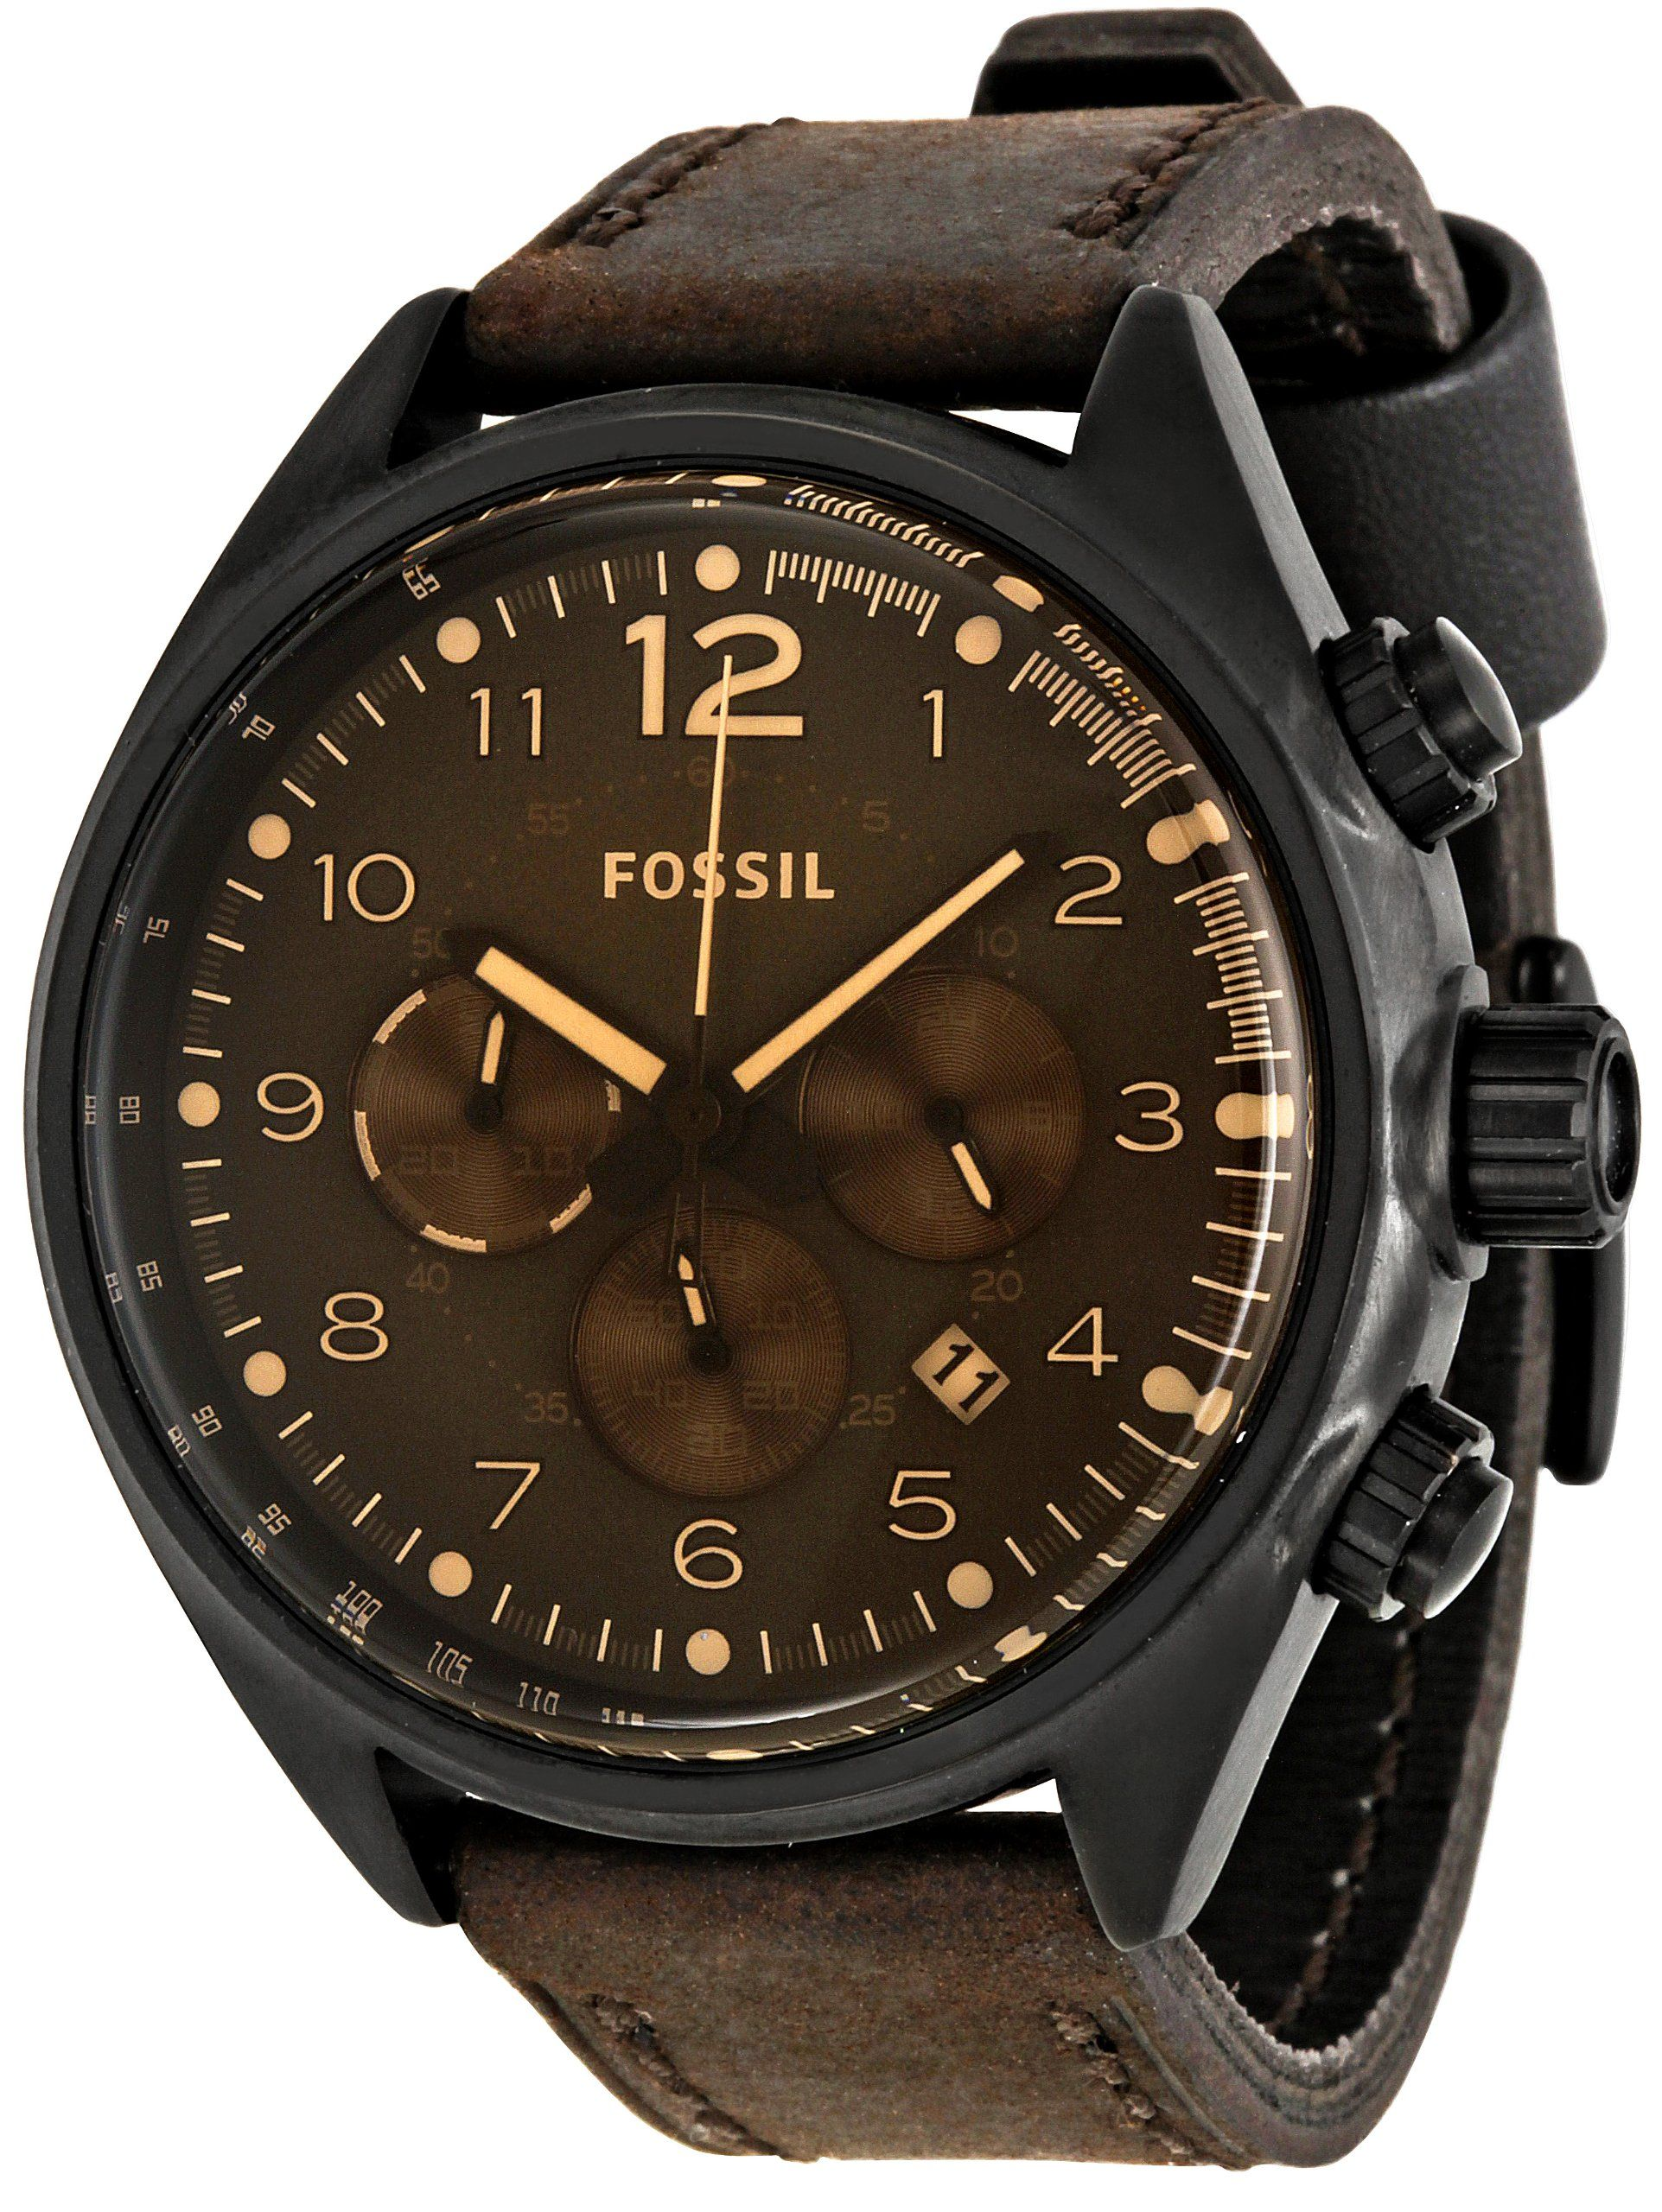 092afb350 Buy Fossil Men's CH2782 Flight Brown Dial Watch and other Wrist Watches at  Amazon.com. Our wide selection is eligible for free shipping and free  returns.